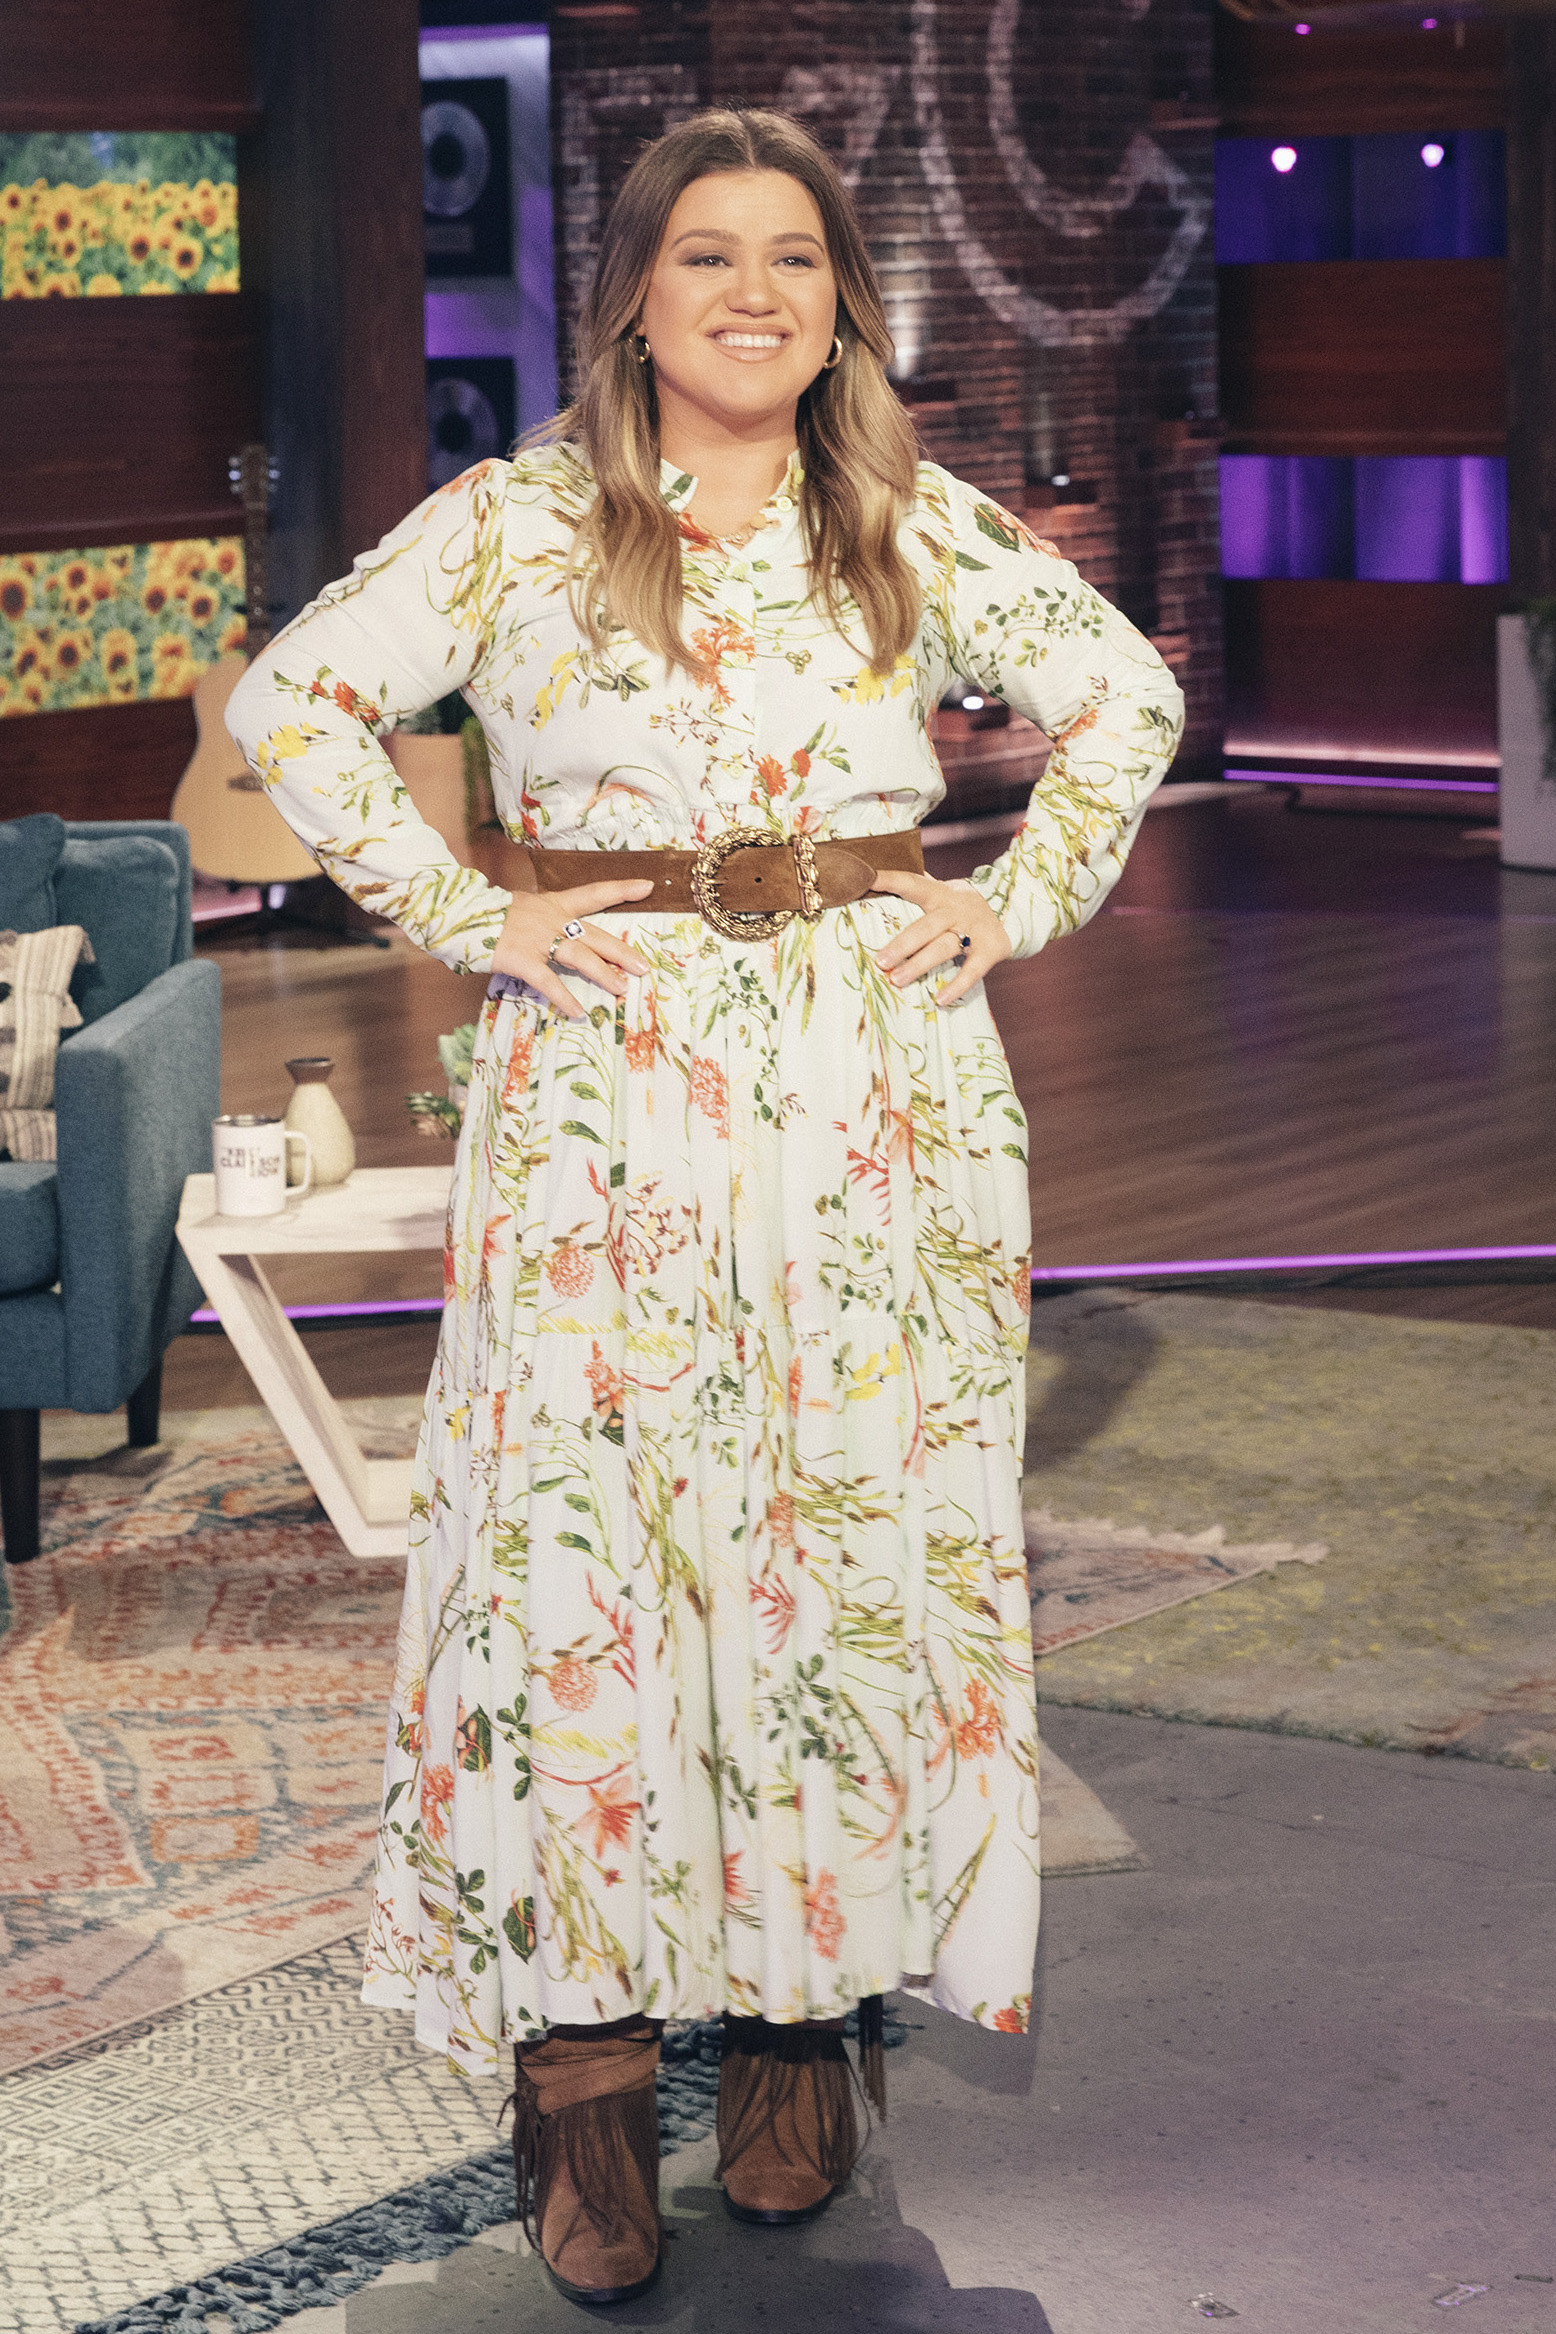 Kelly wears an ankle length floral patterned dress with a belt around her waist and fringe-covered booties.